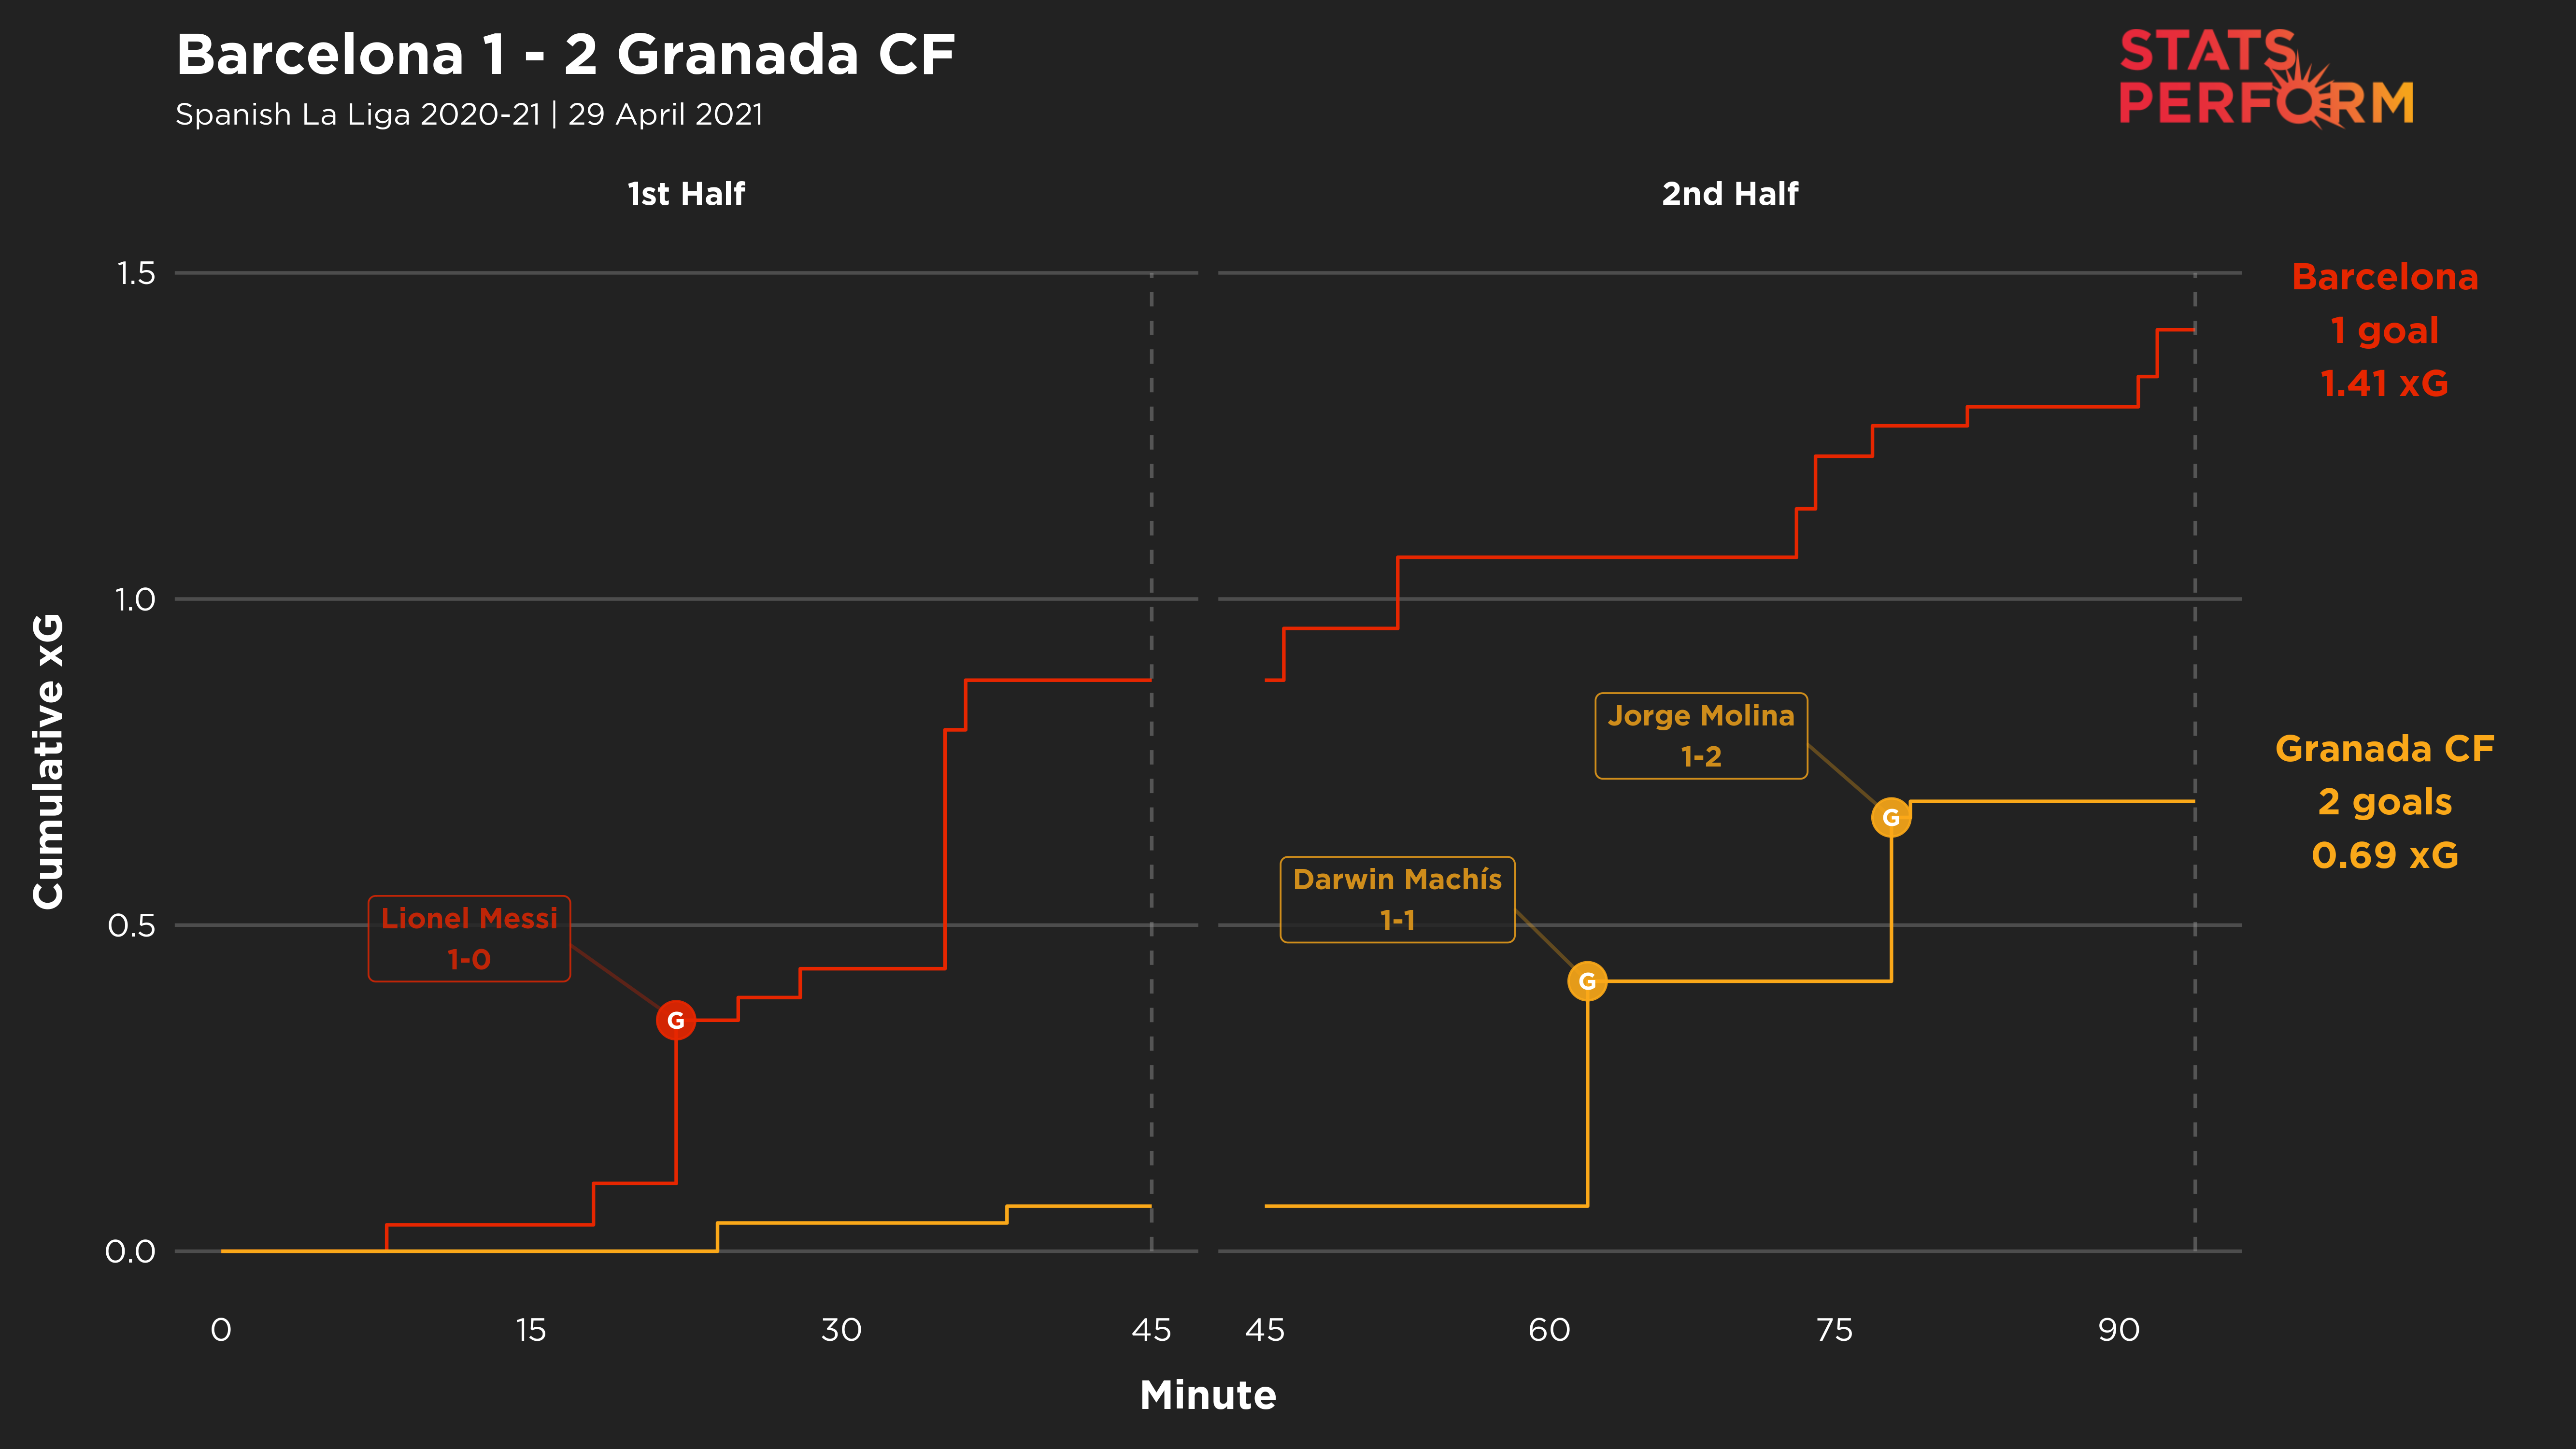 Barcelona lost to Granada, who massively out-performed their xG